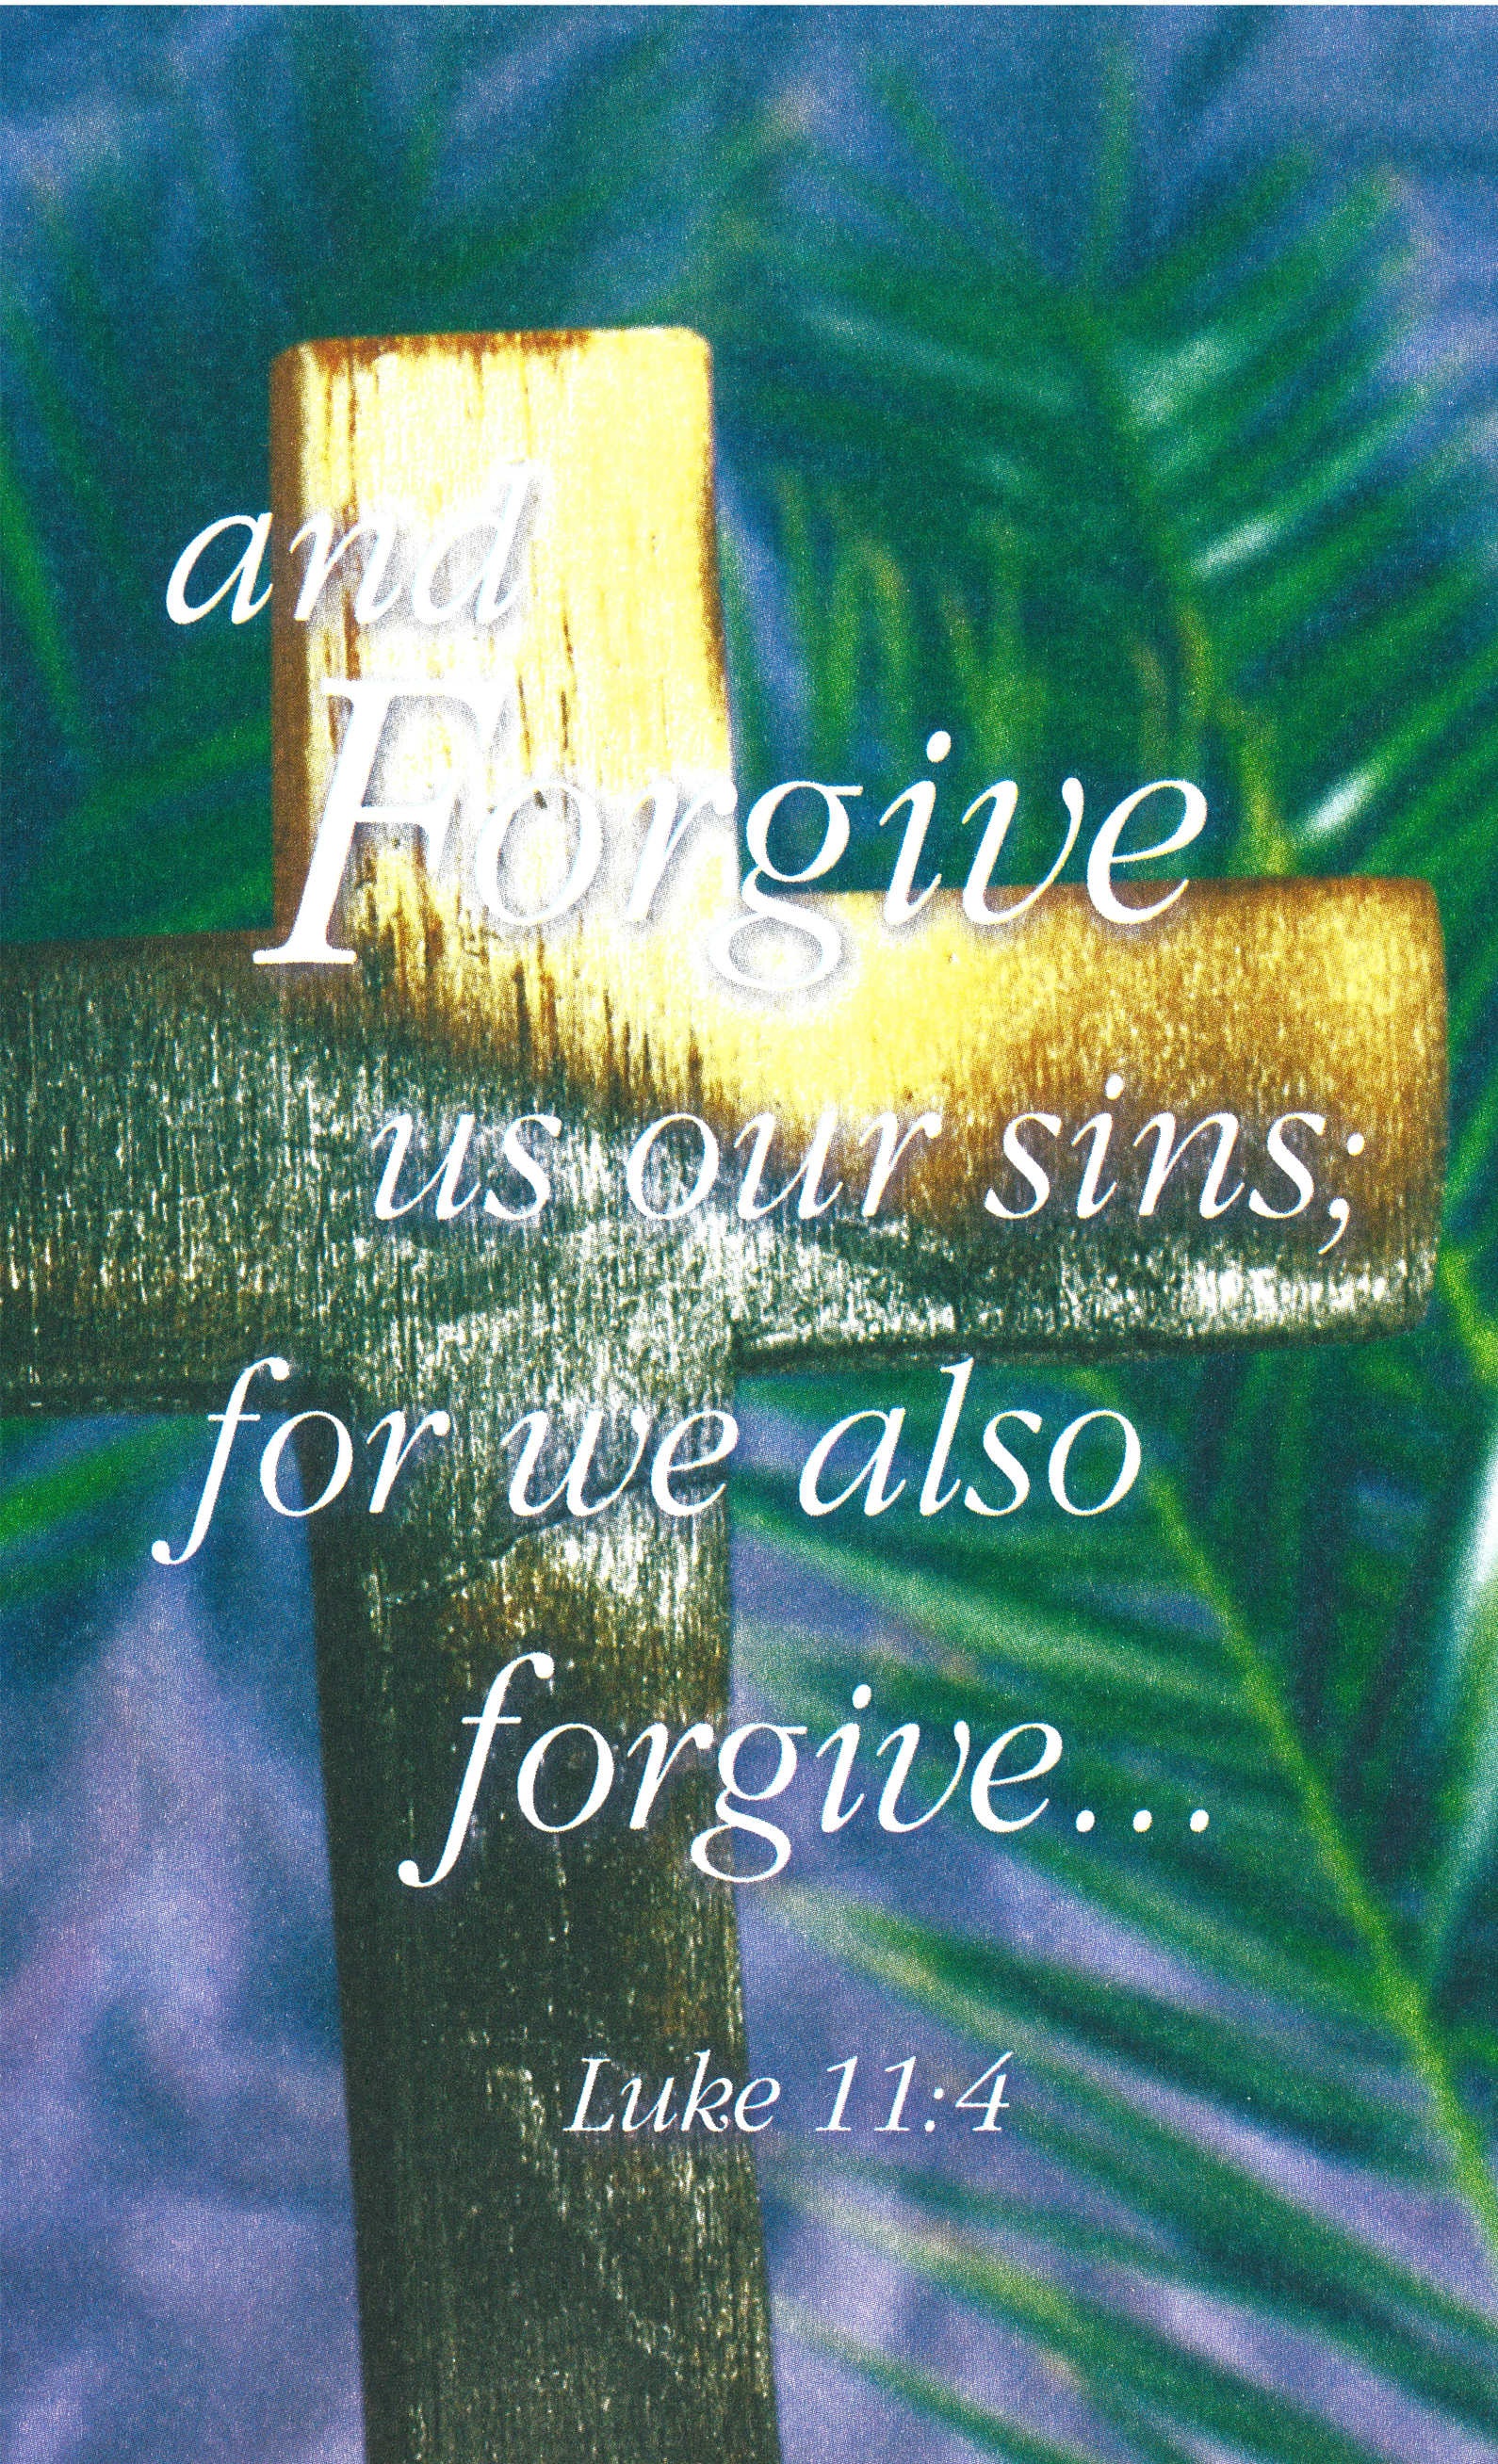 Bulletin Covers Reconciliation Forgive Our Sins-9892